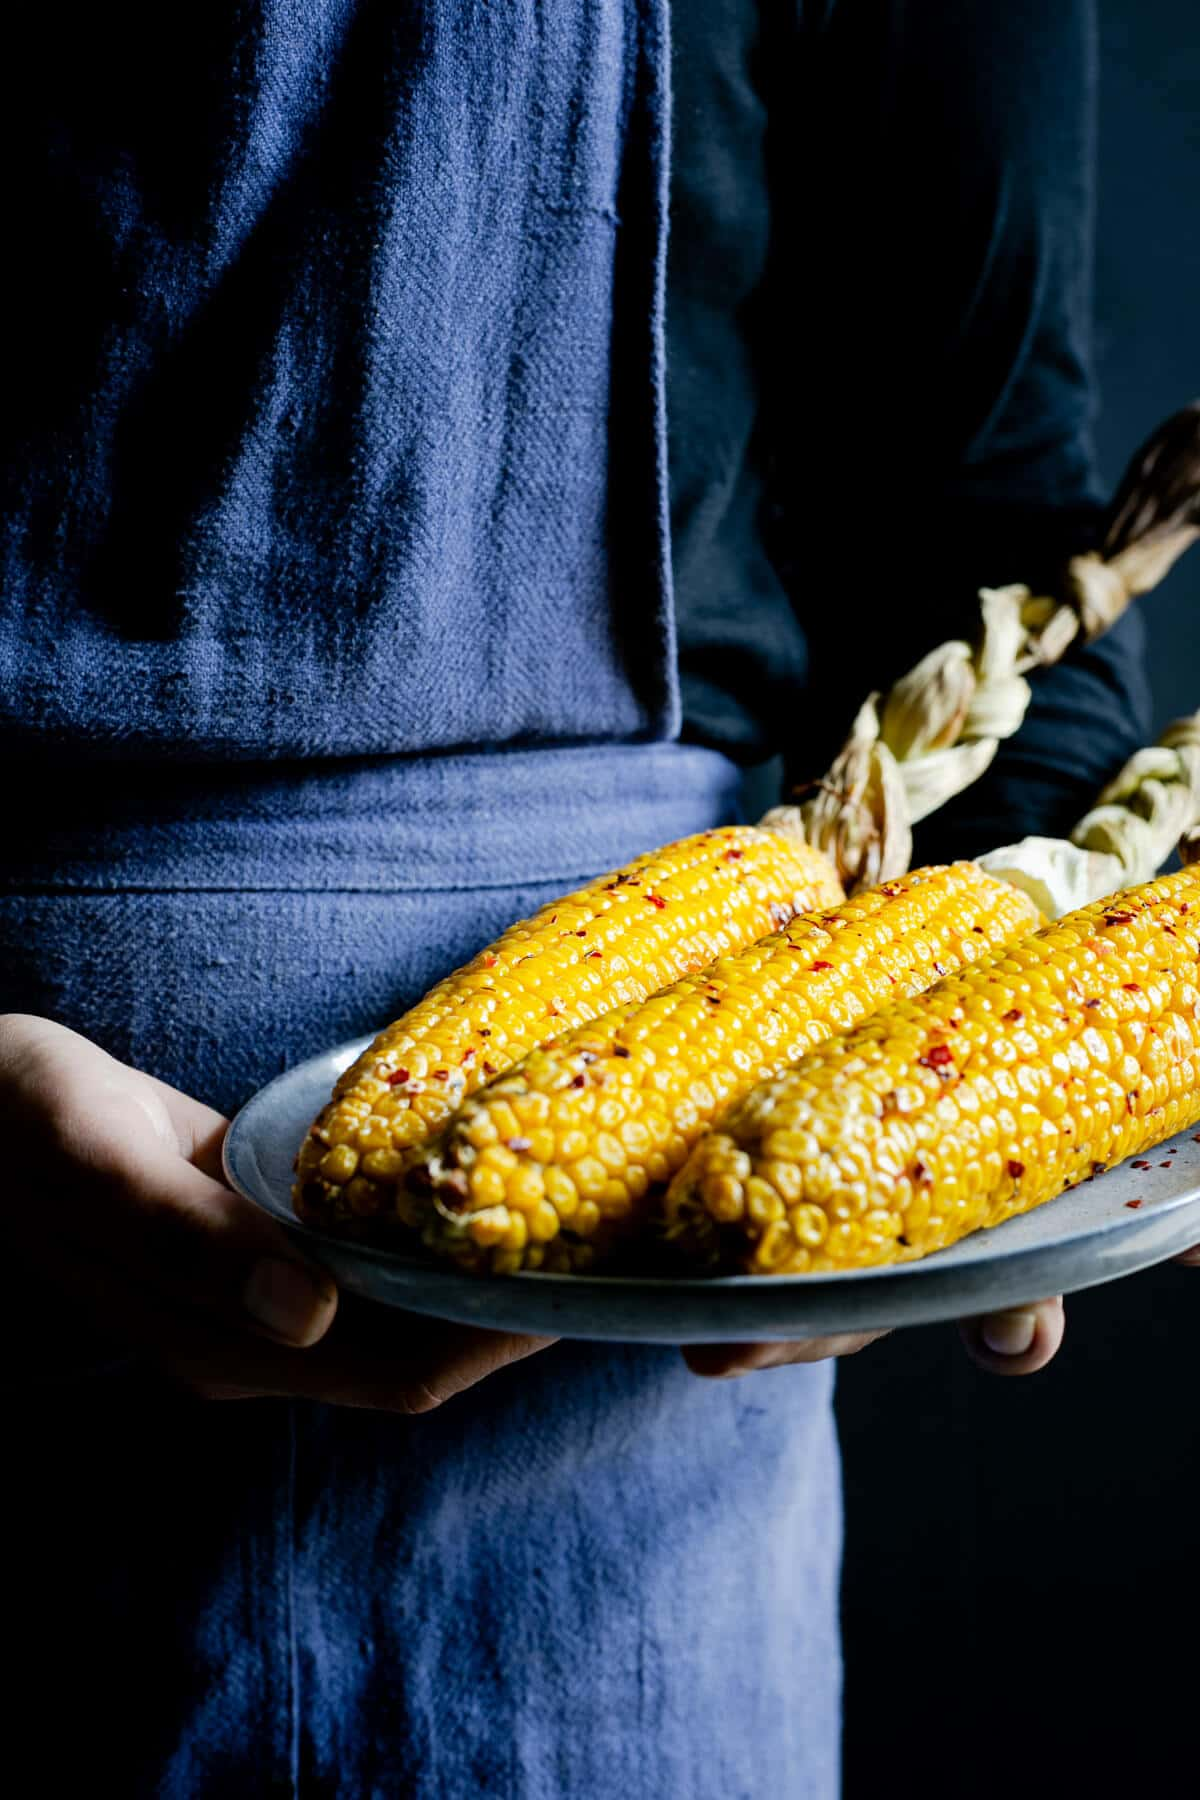 A person holding a plate with buttered corn on the cob